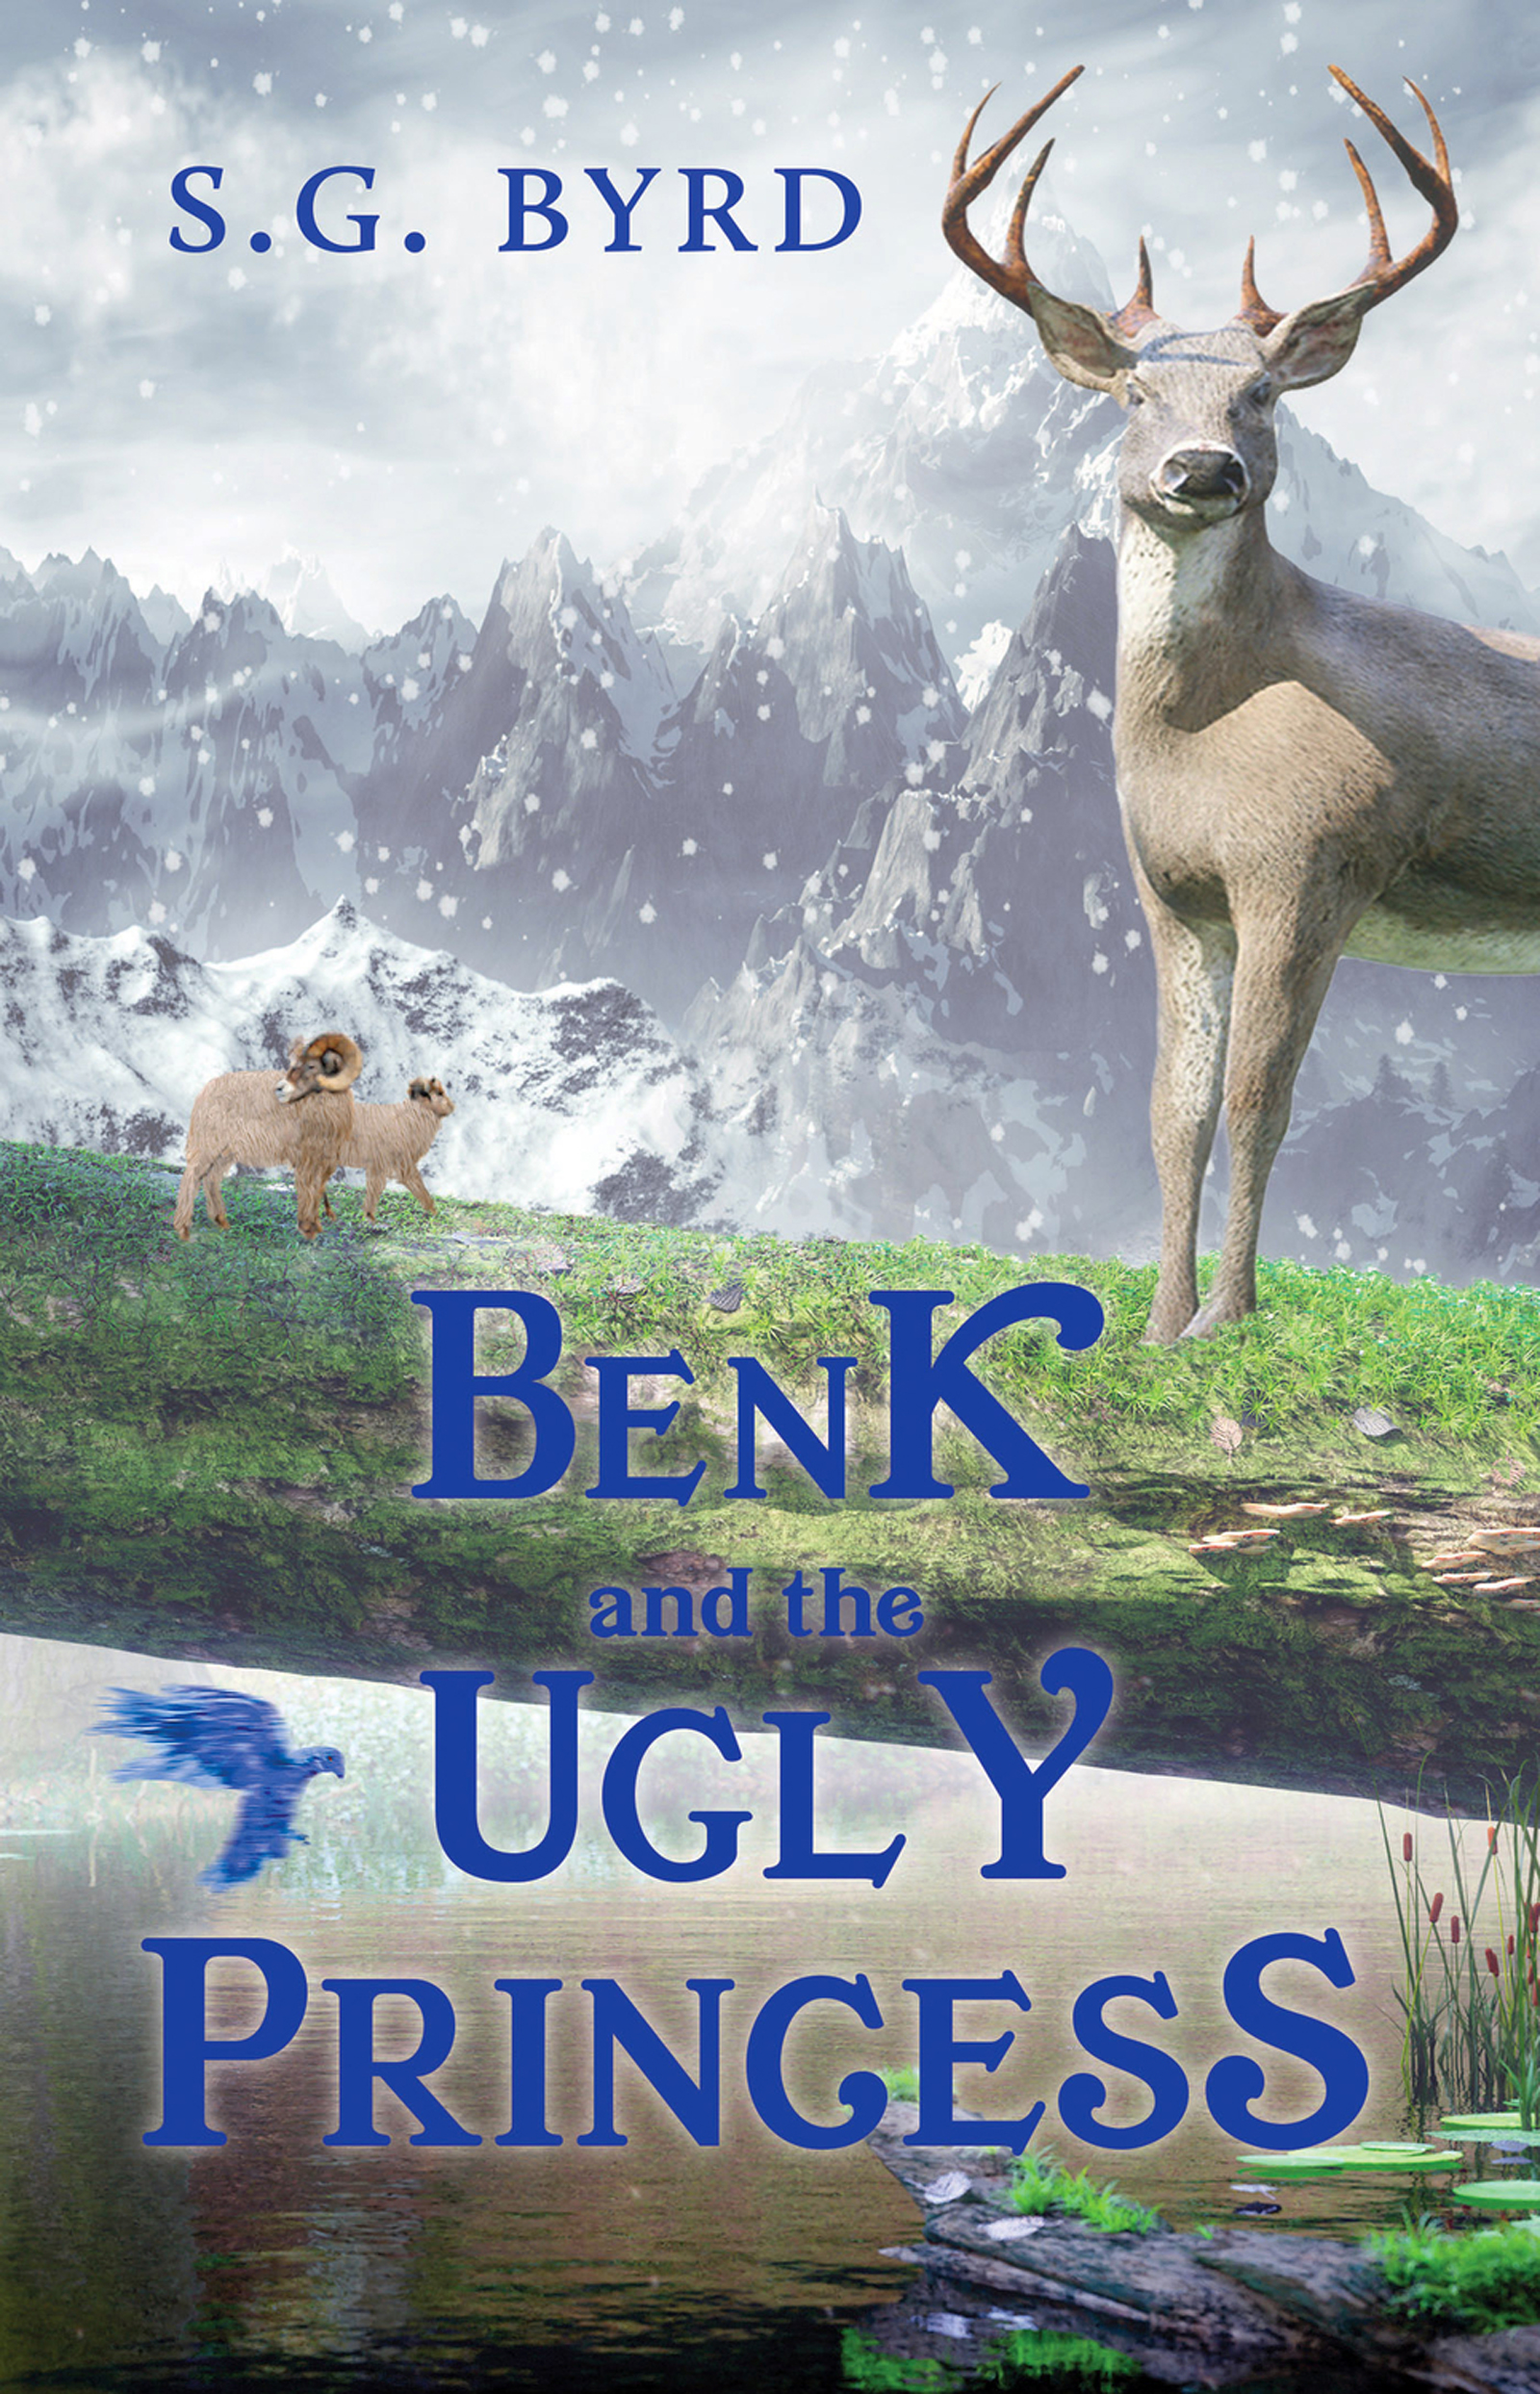 Benk and the Ugly Princess